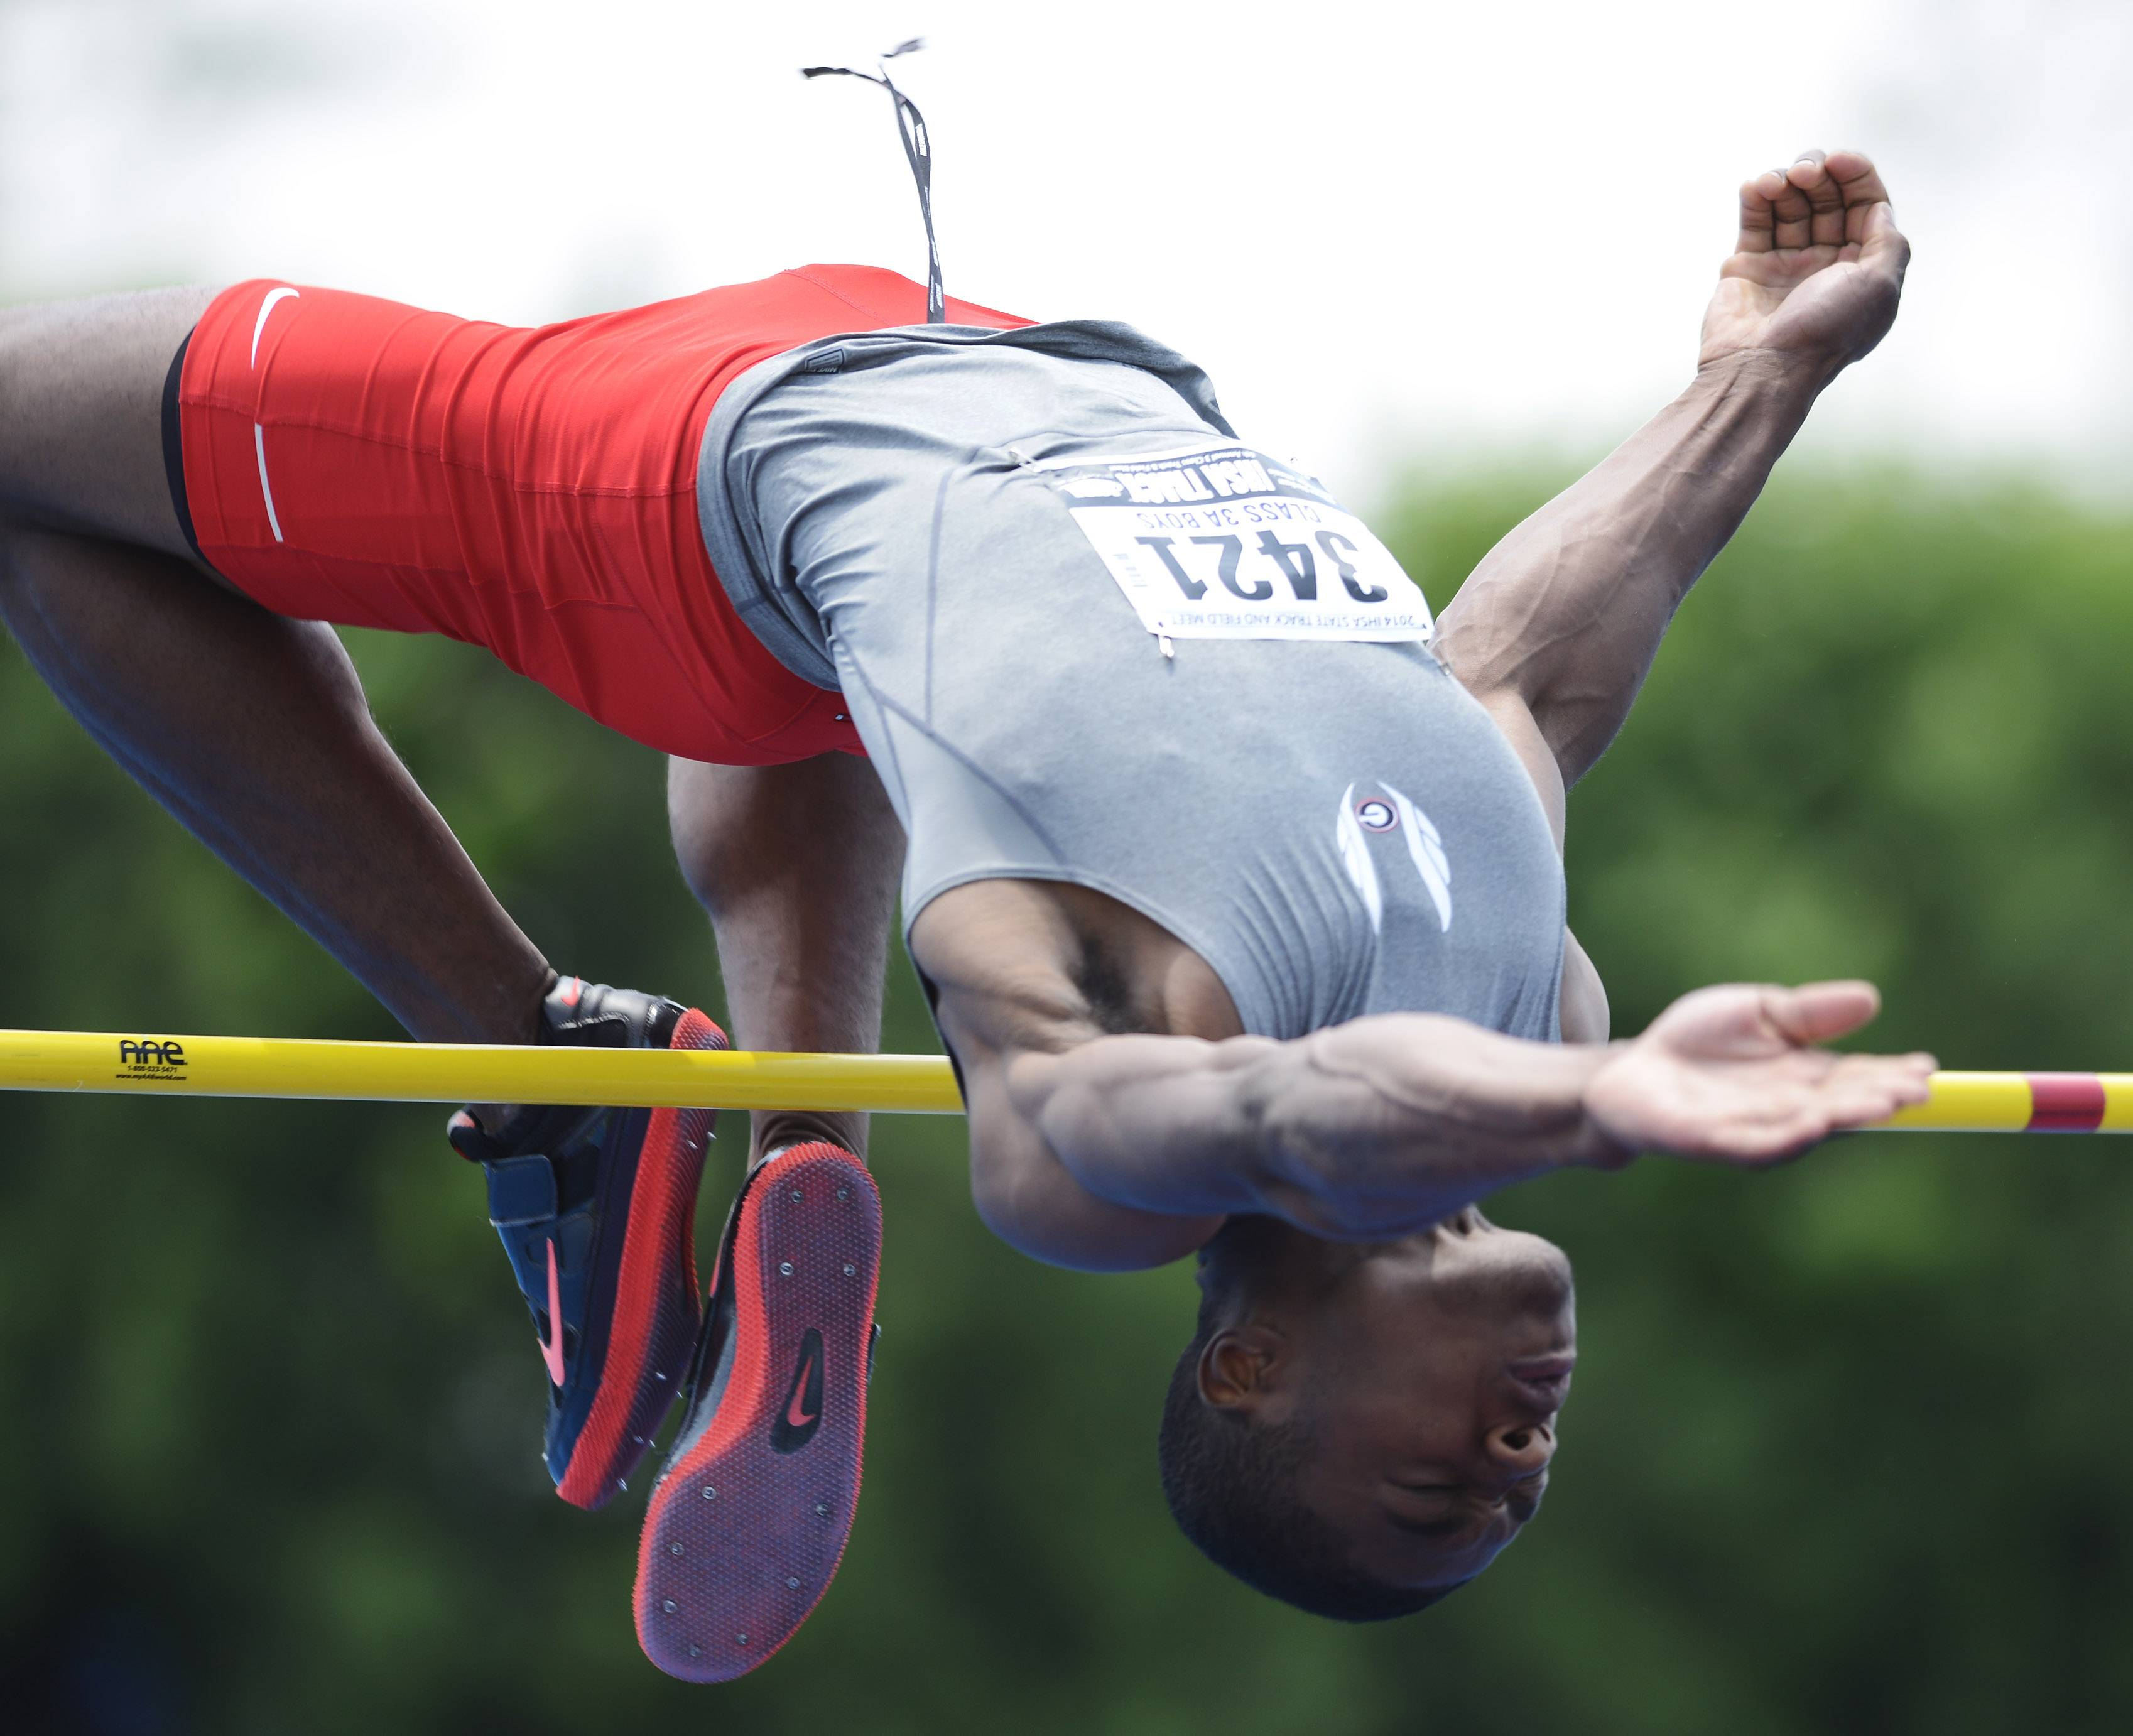 Jonathan Wells of Grant clears the bar at 6 feet, 4 iniches in the high jump during the Class 3A boys track and field state preliminaries in Charleston on Friday.